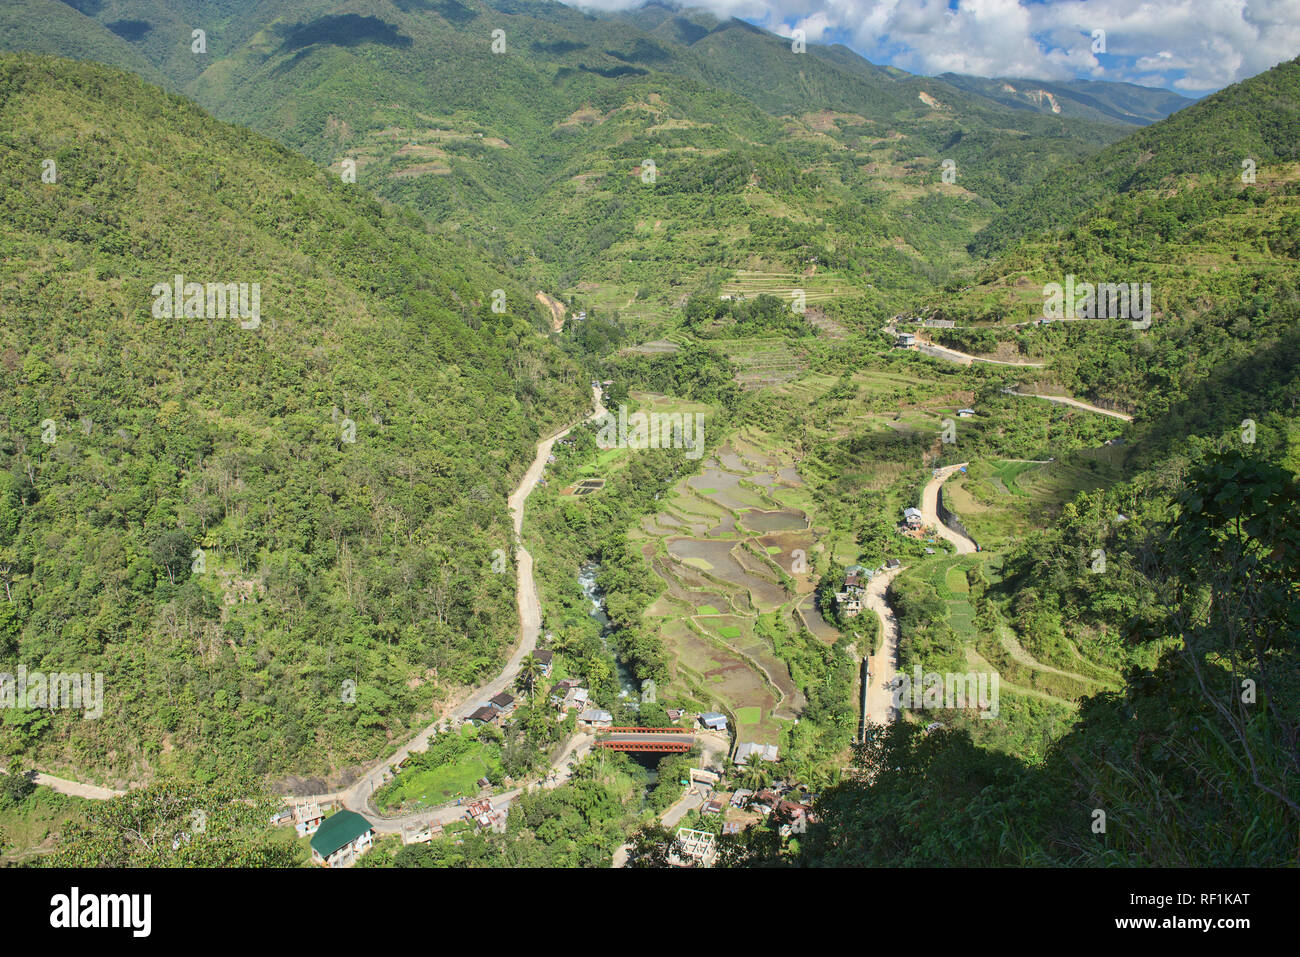 The beautiful UNESCO rice terraces in Hapao, Banaue, Mountain Province, Philippines - Stock Image